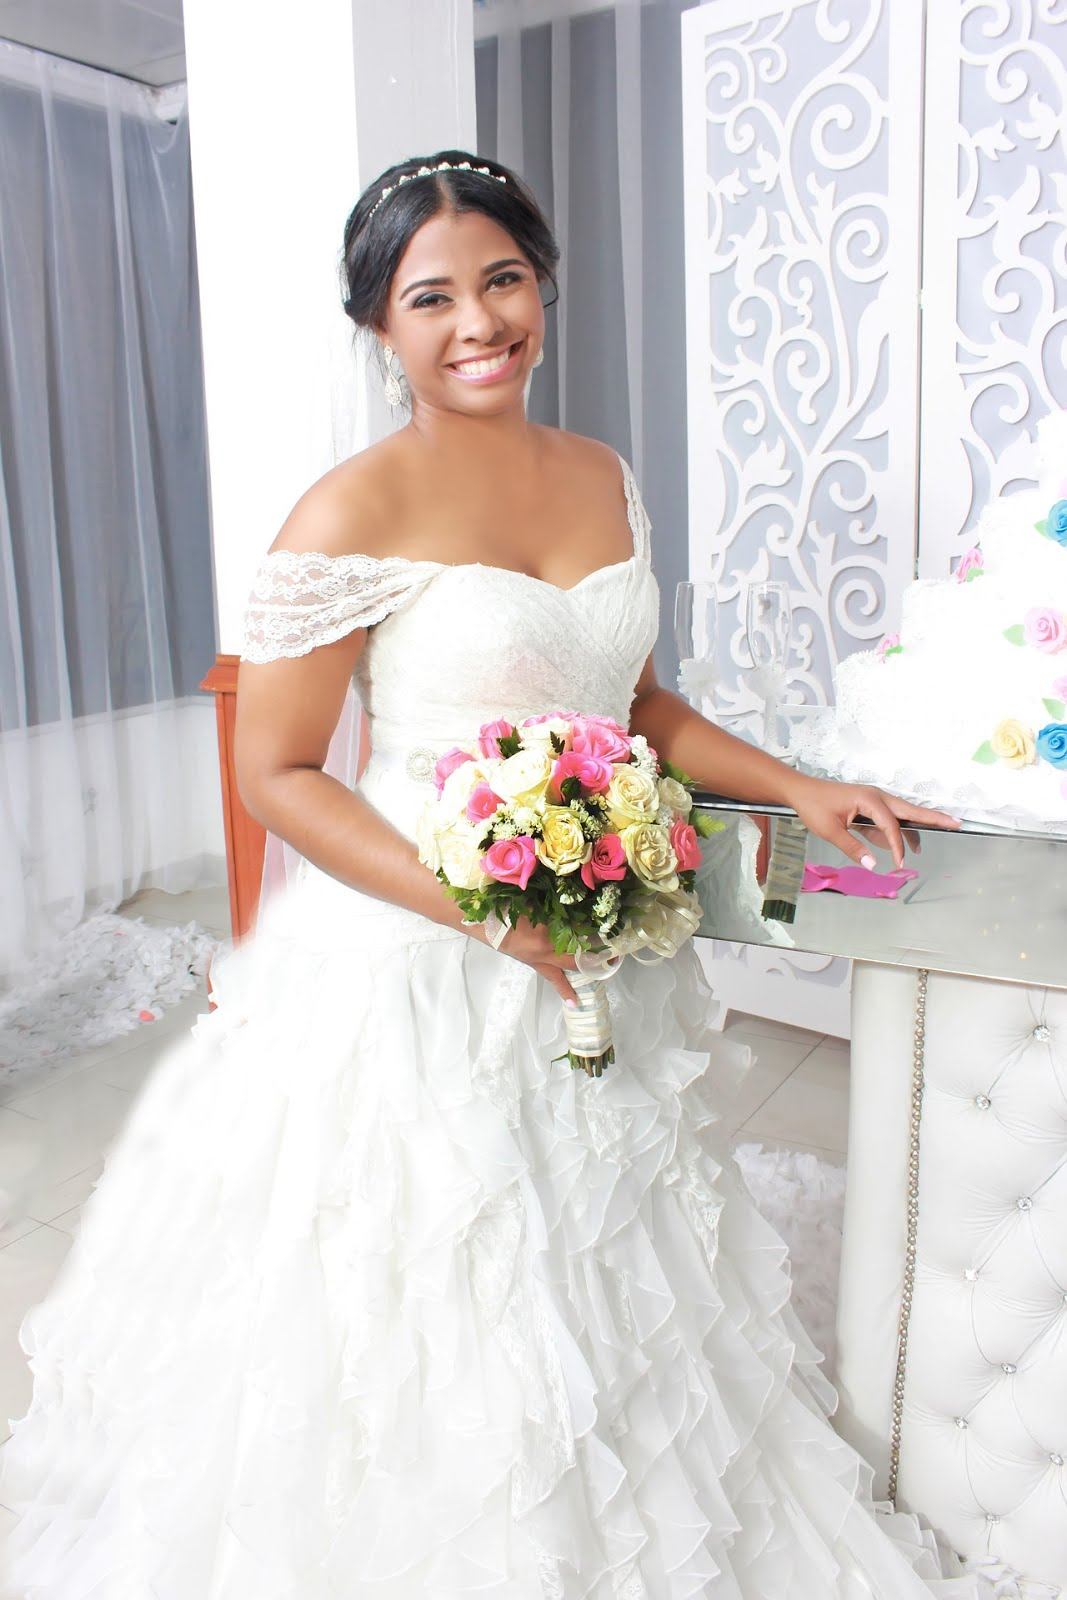 e4c4039d32d0a Know your bride: You are a bridesmaid, of course you have a relationship  with the bride. (I believe so.) It is very crucial that you know and  understand the ...